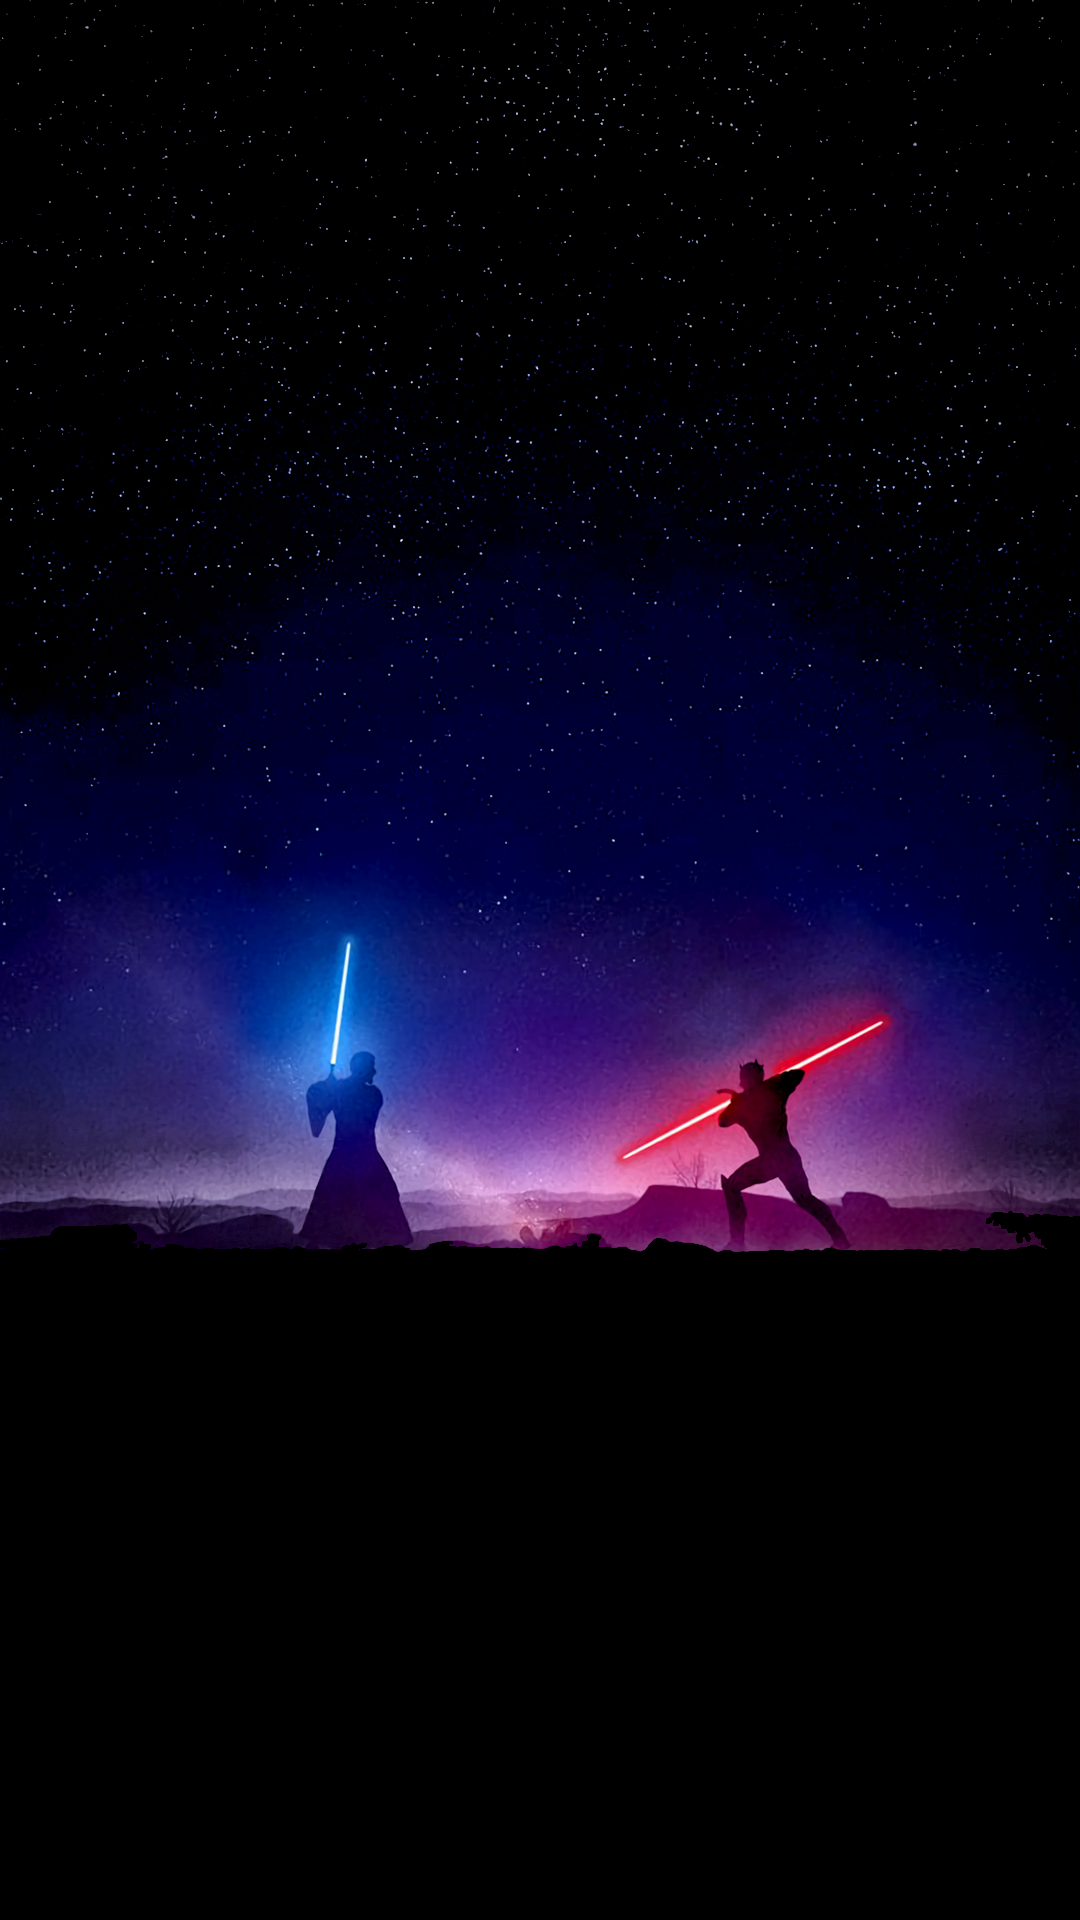 Star Wars 1080x1920 Wallpapers Top Free Star Wars 1080x1920 Backgrounds Wallpaperaccess